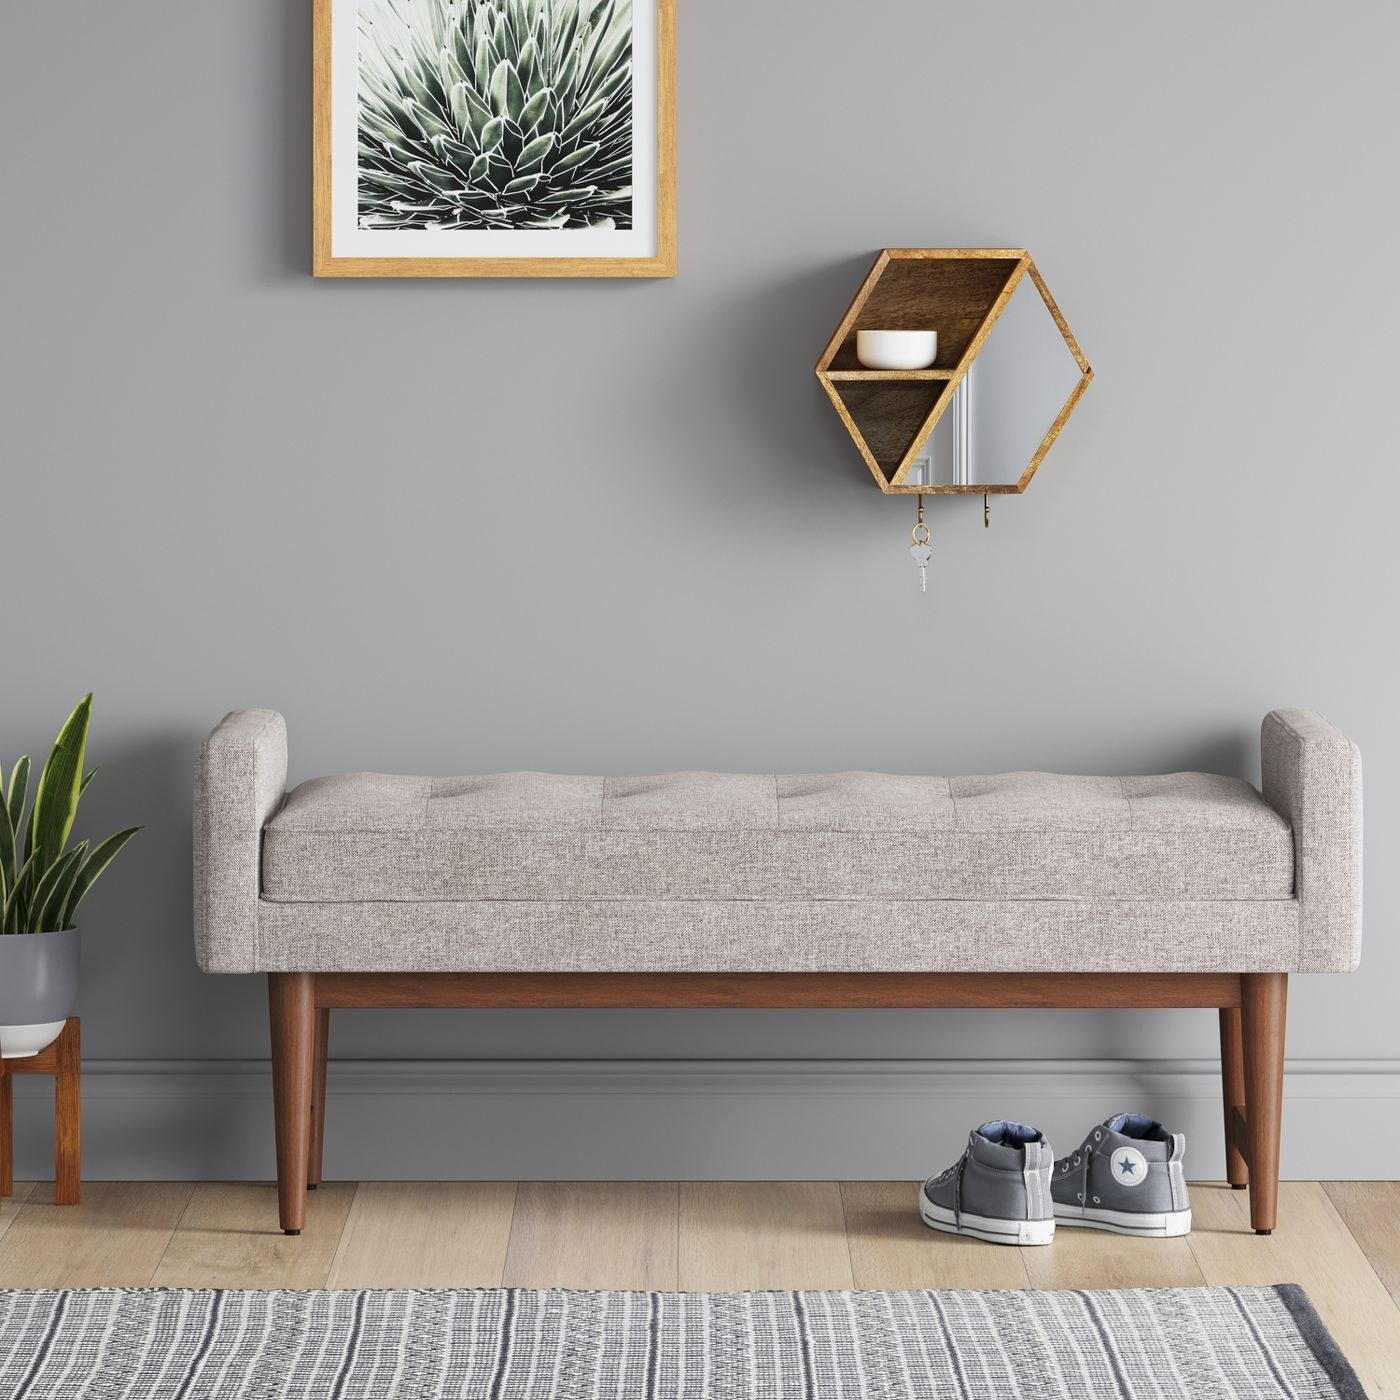 grey upholstered bunch with wood legs against a wall